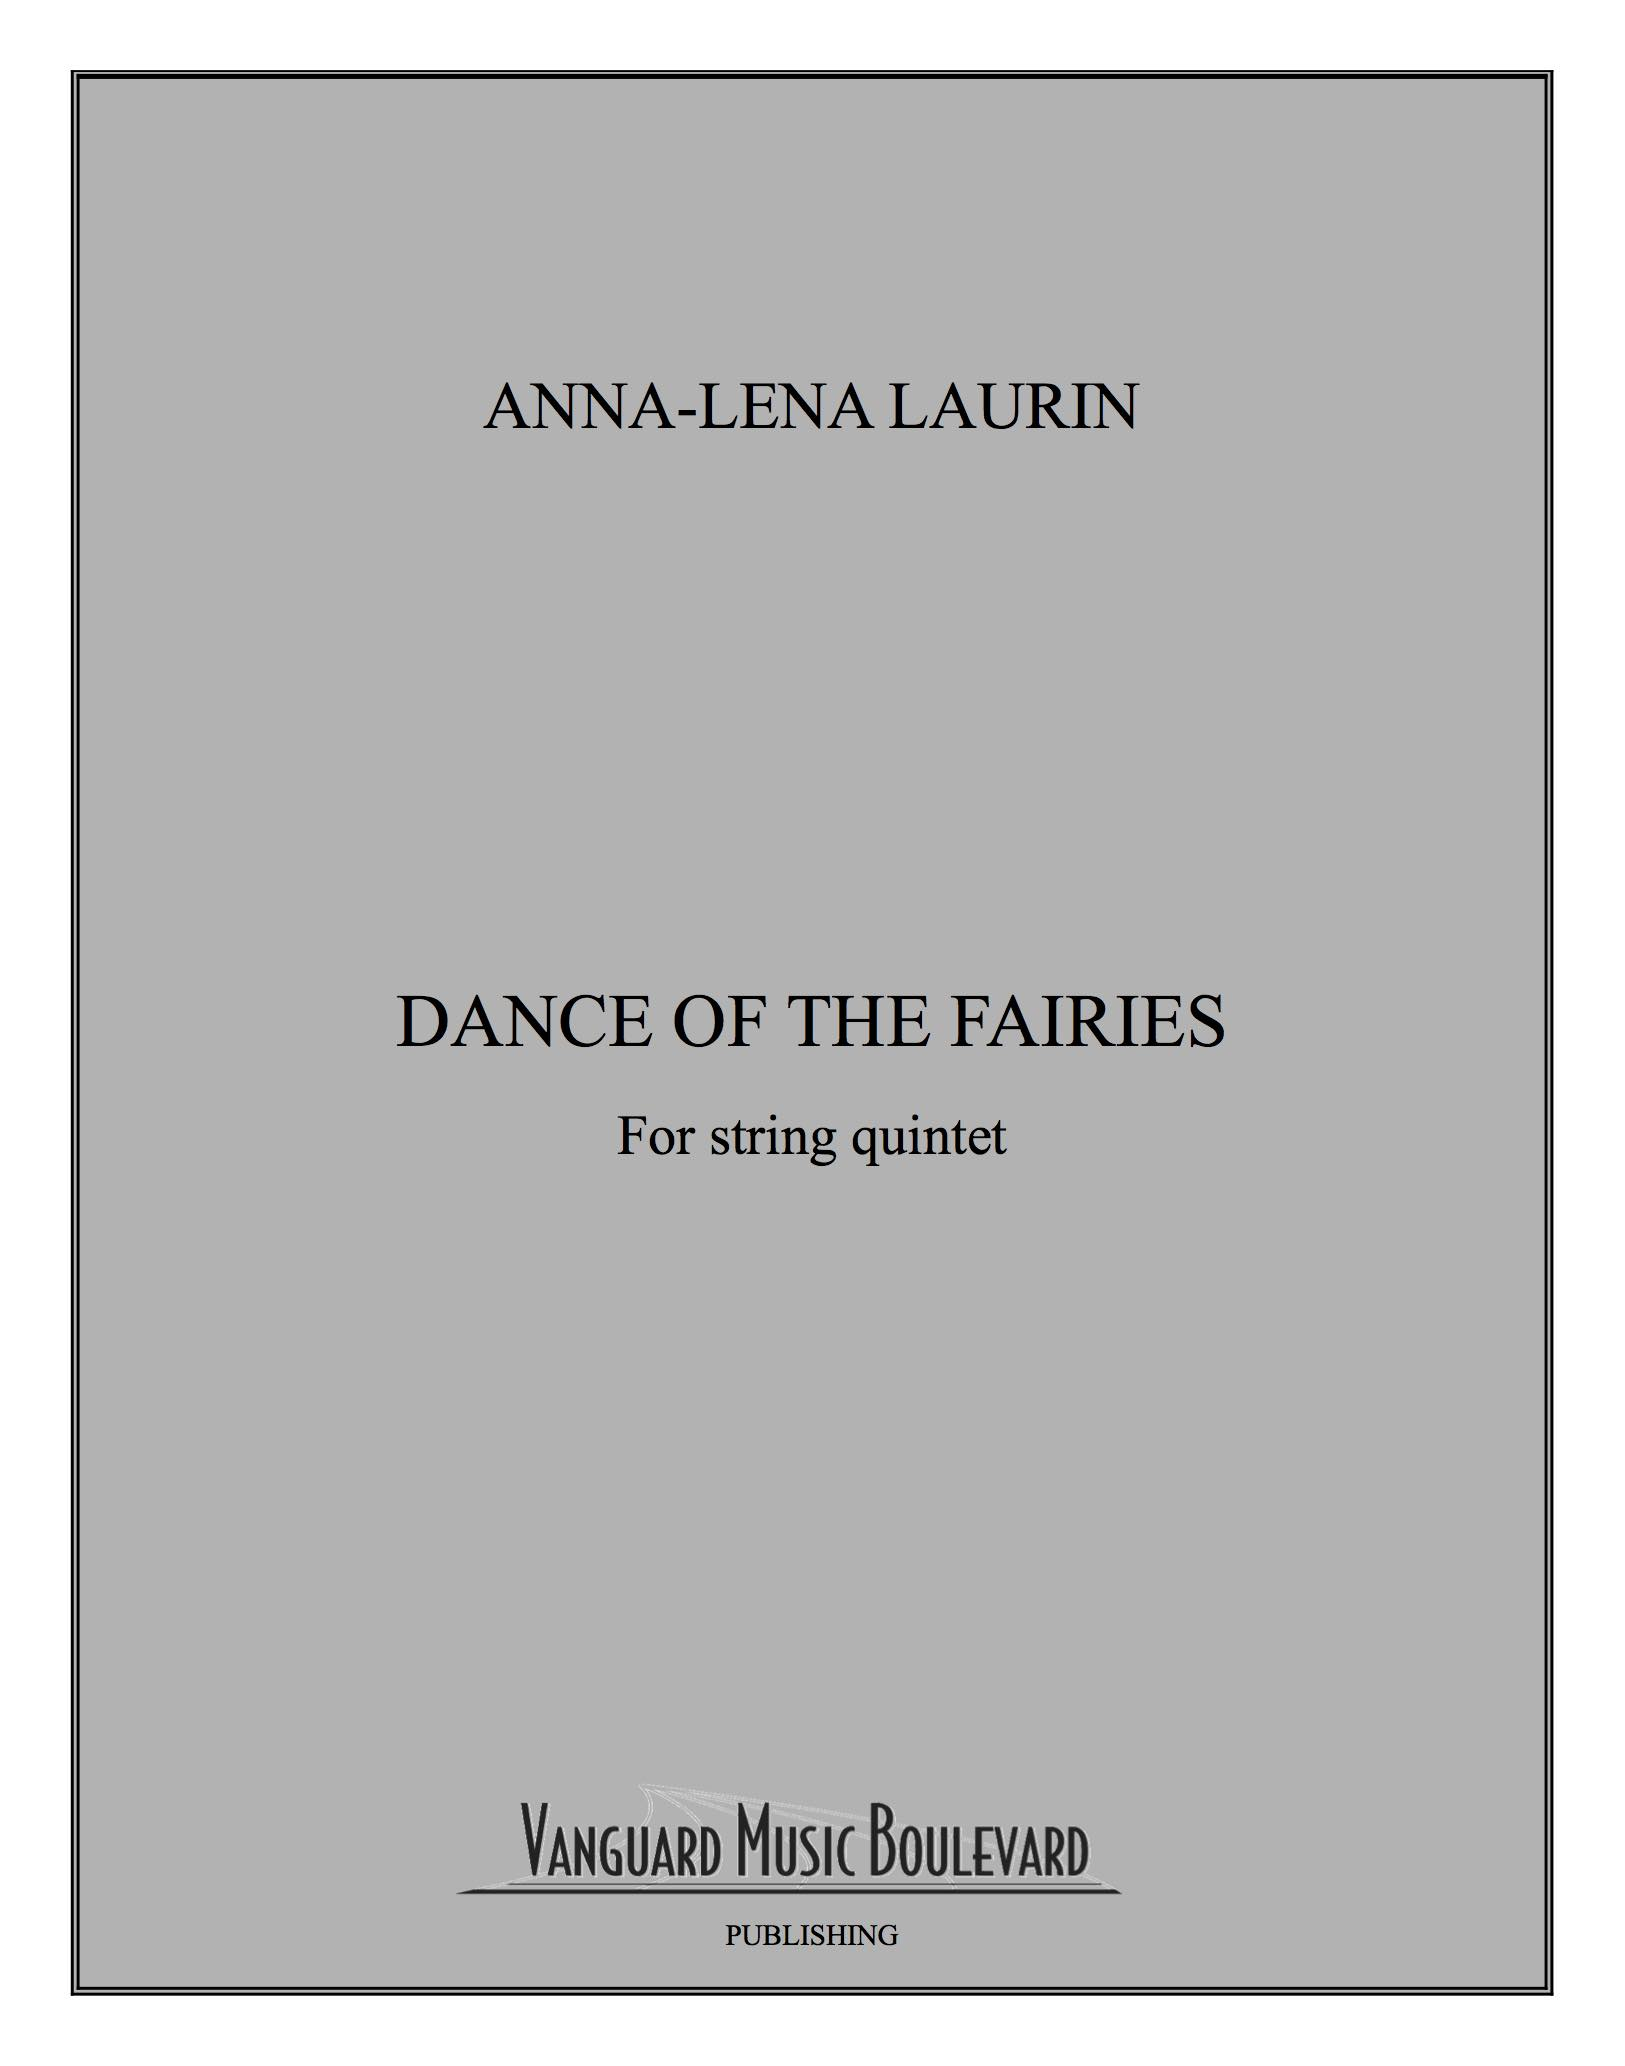 DANCE OF THE FAIRIES